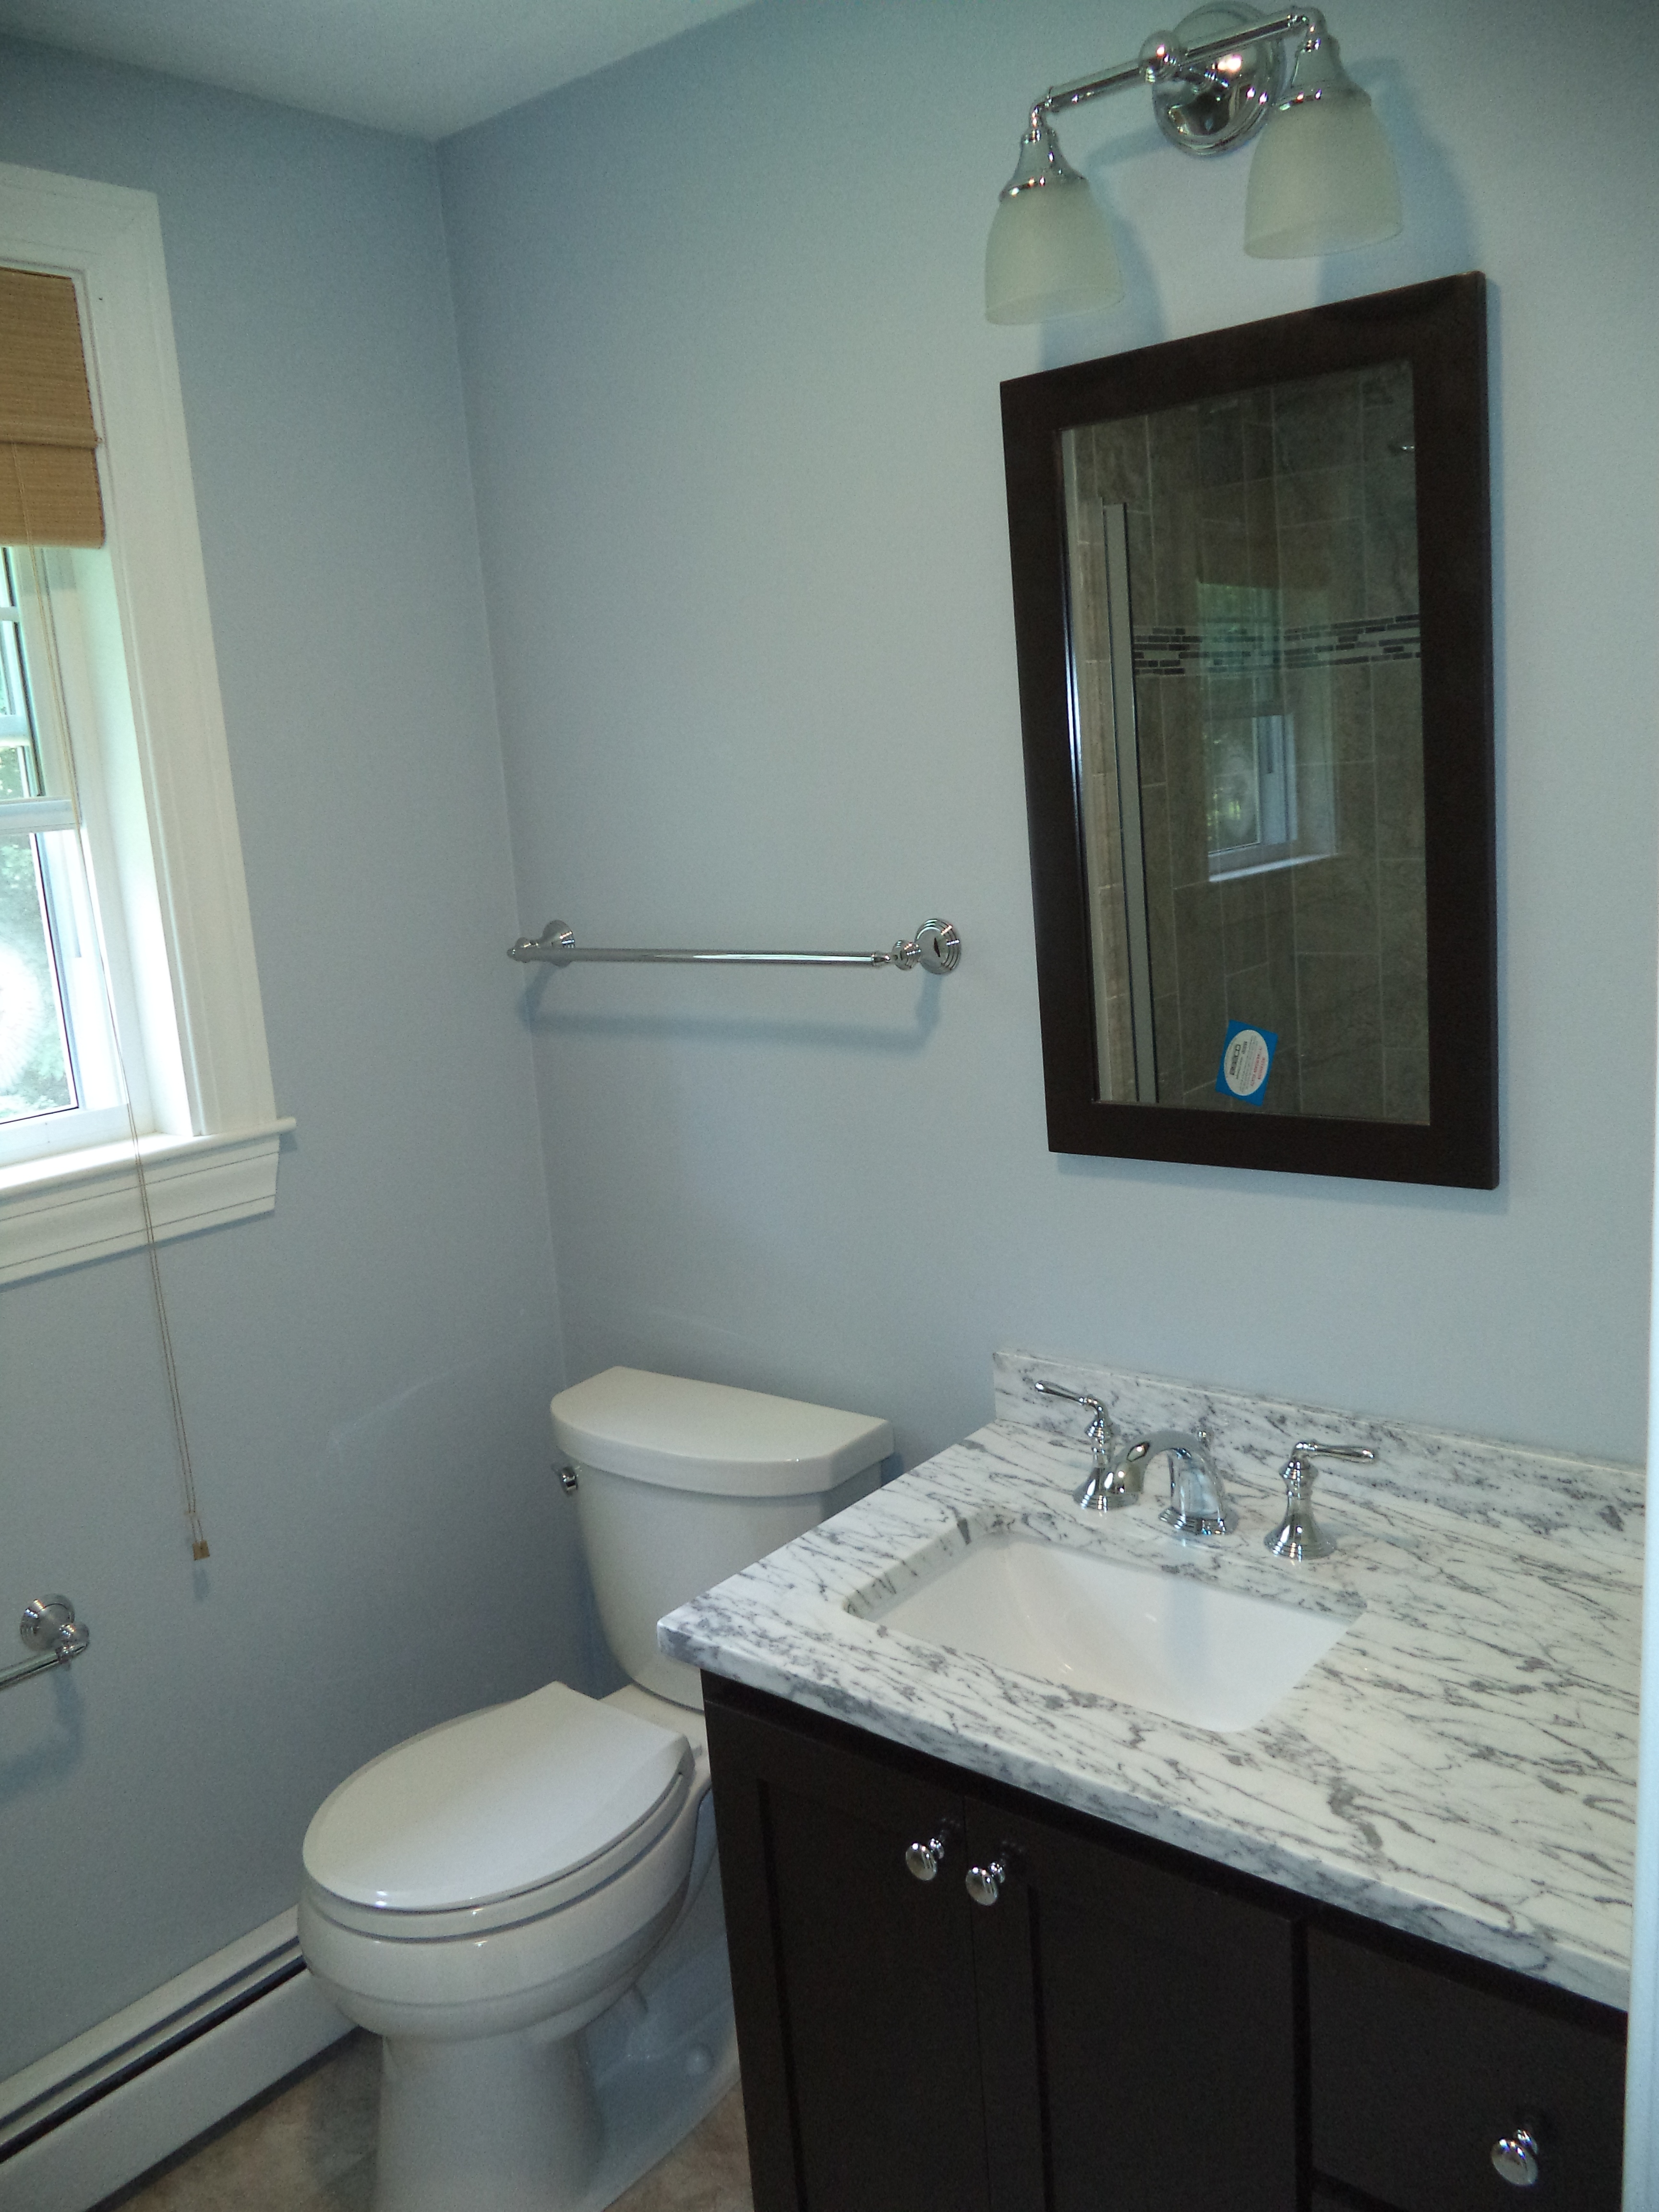 rebuilding bathrooms in hampstead nh nh bath builders rh nhbathbuilders com